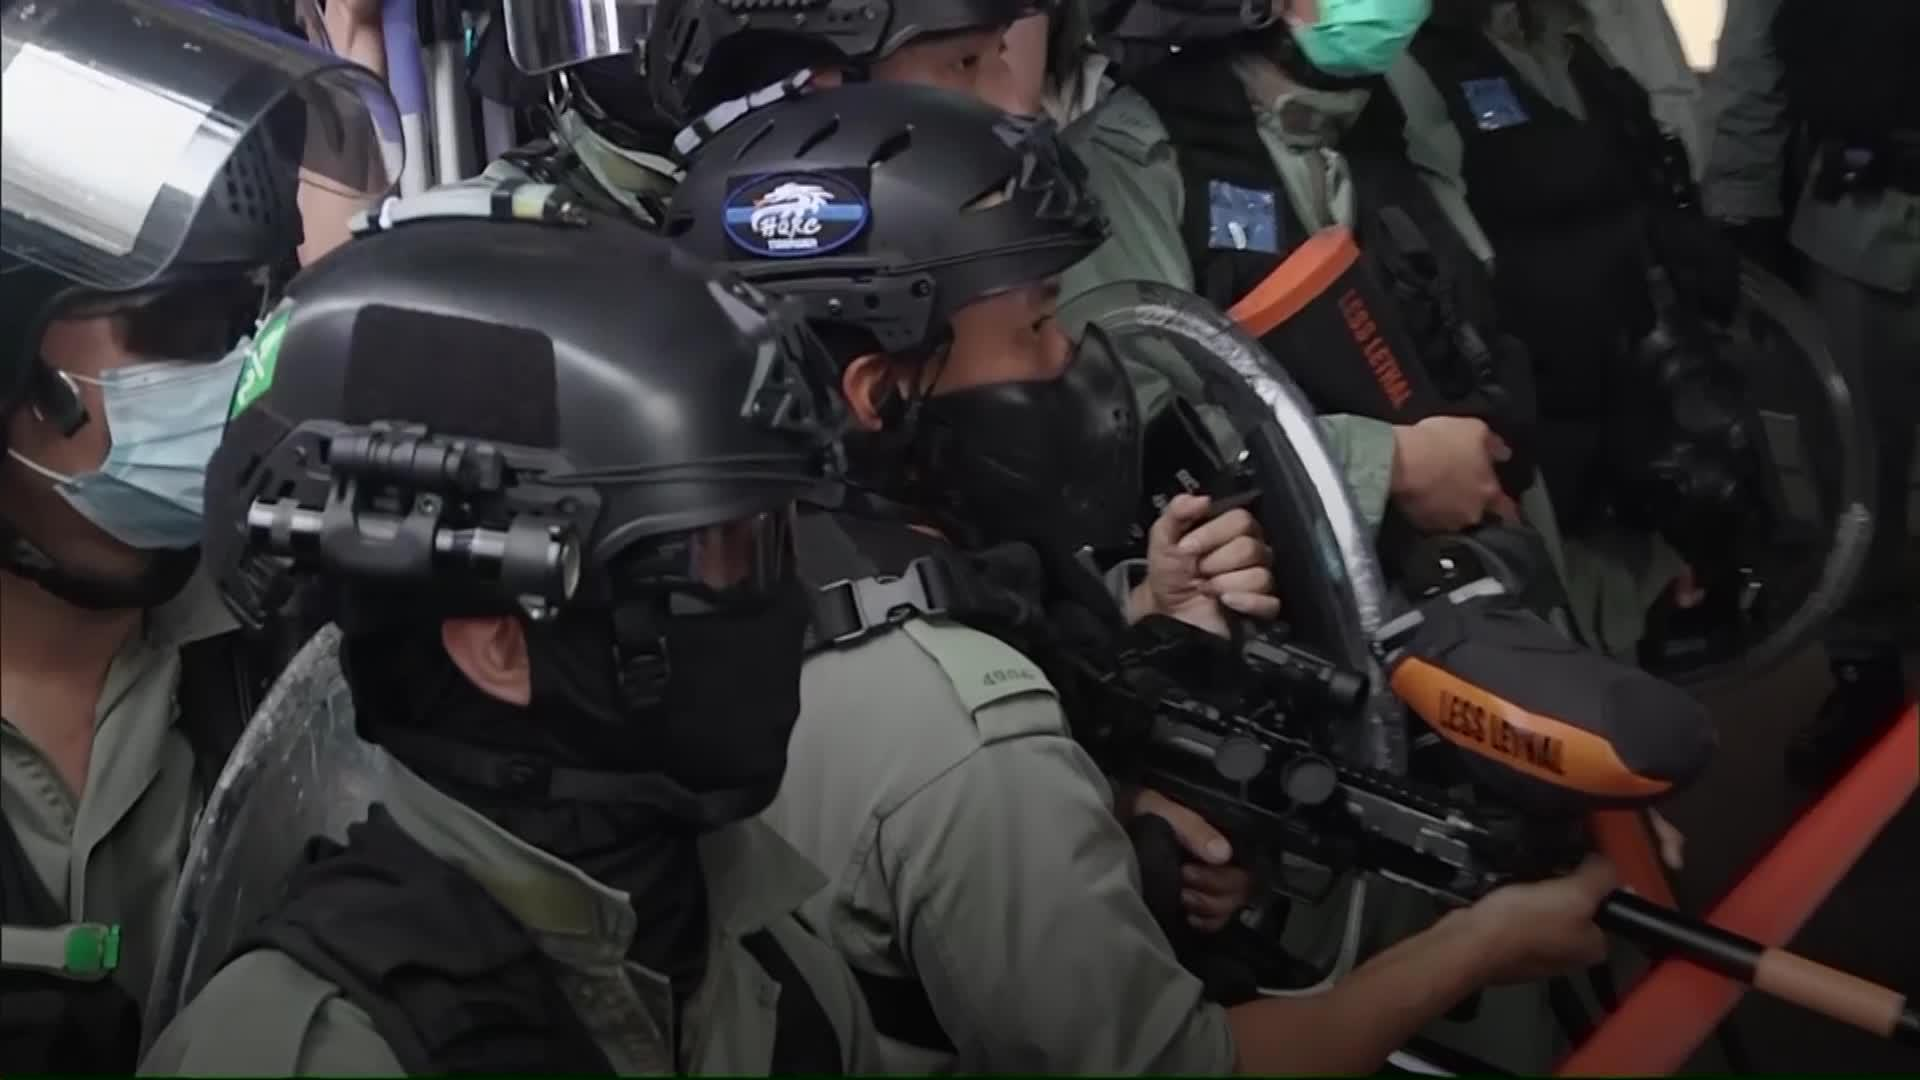 Hong Kong police out in force to disperse protesters